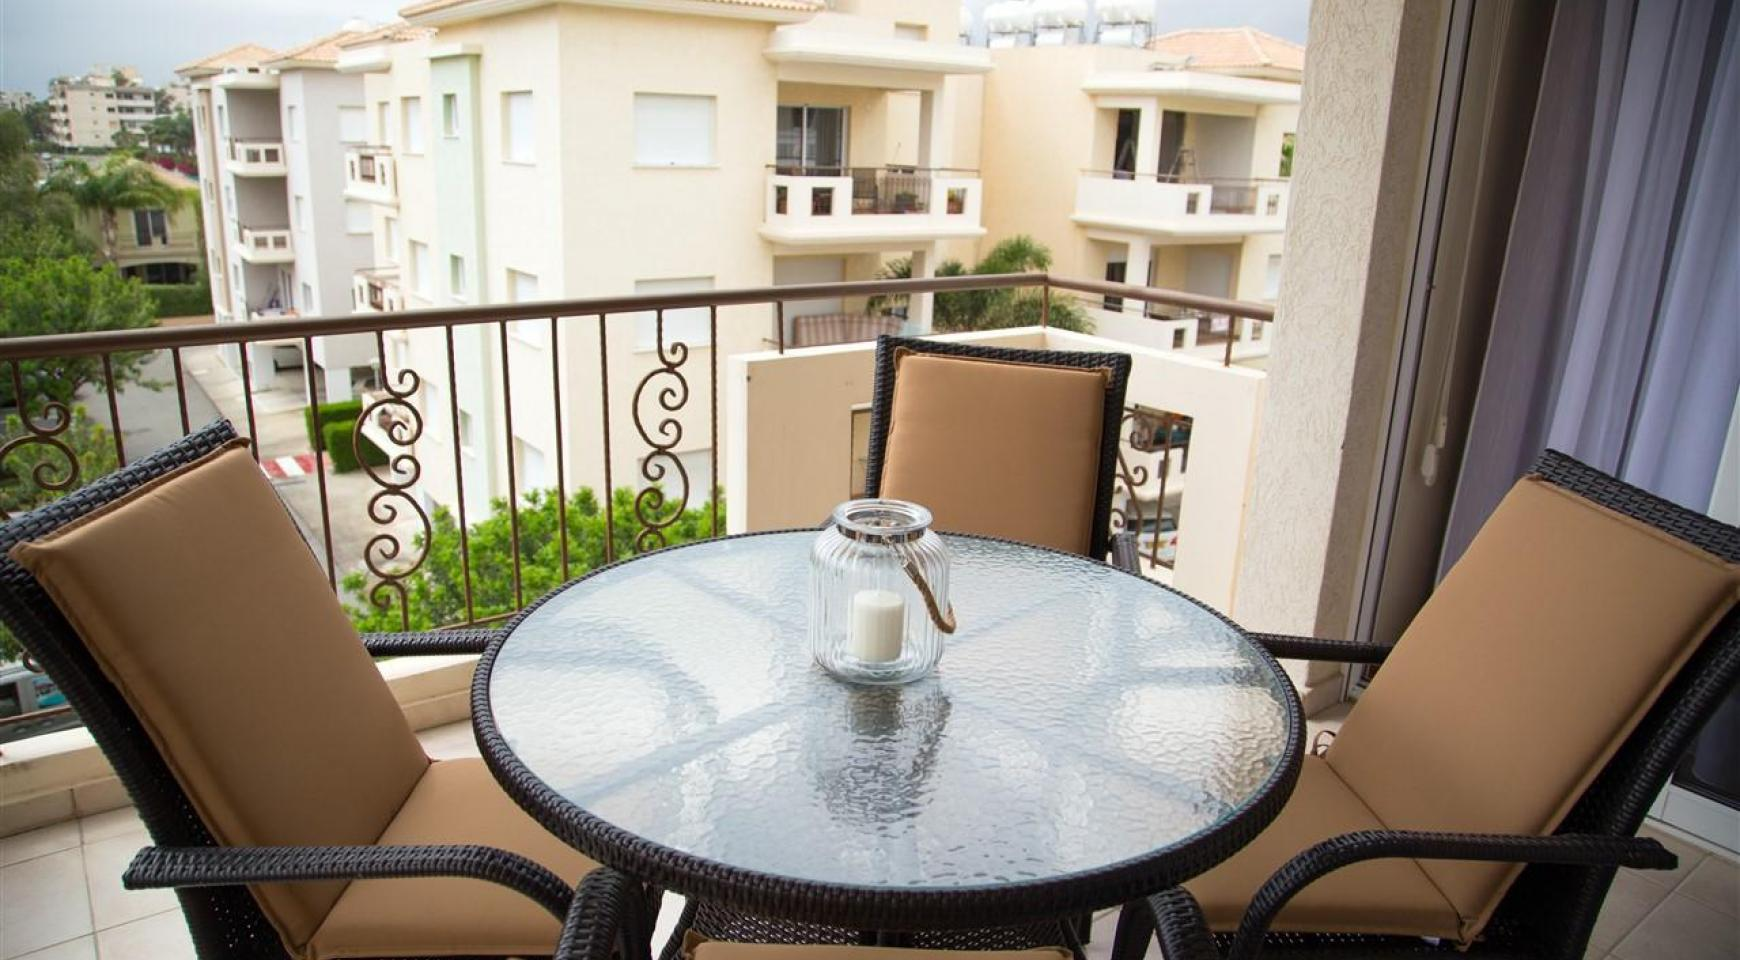 Luxury 2 Bedroom Apartment Mesogios Iris 304 in the Tourist area near the Beach - 23